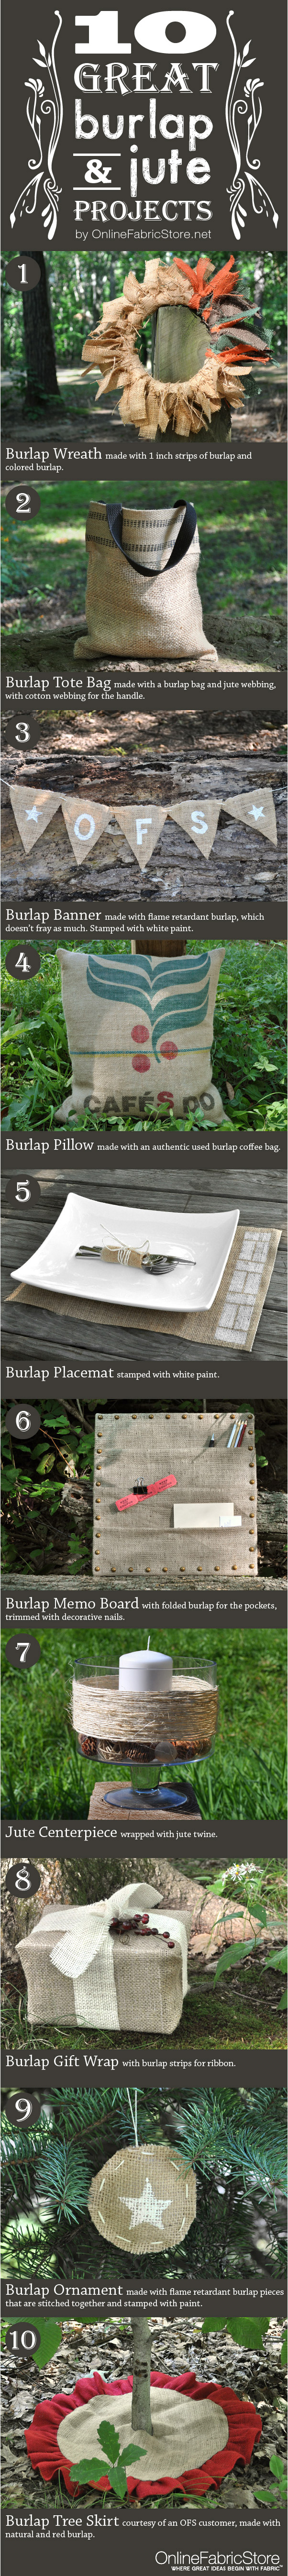 10 Great Burlap & Jute Projects from OFS